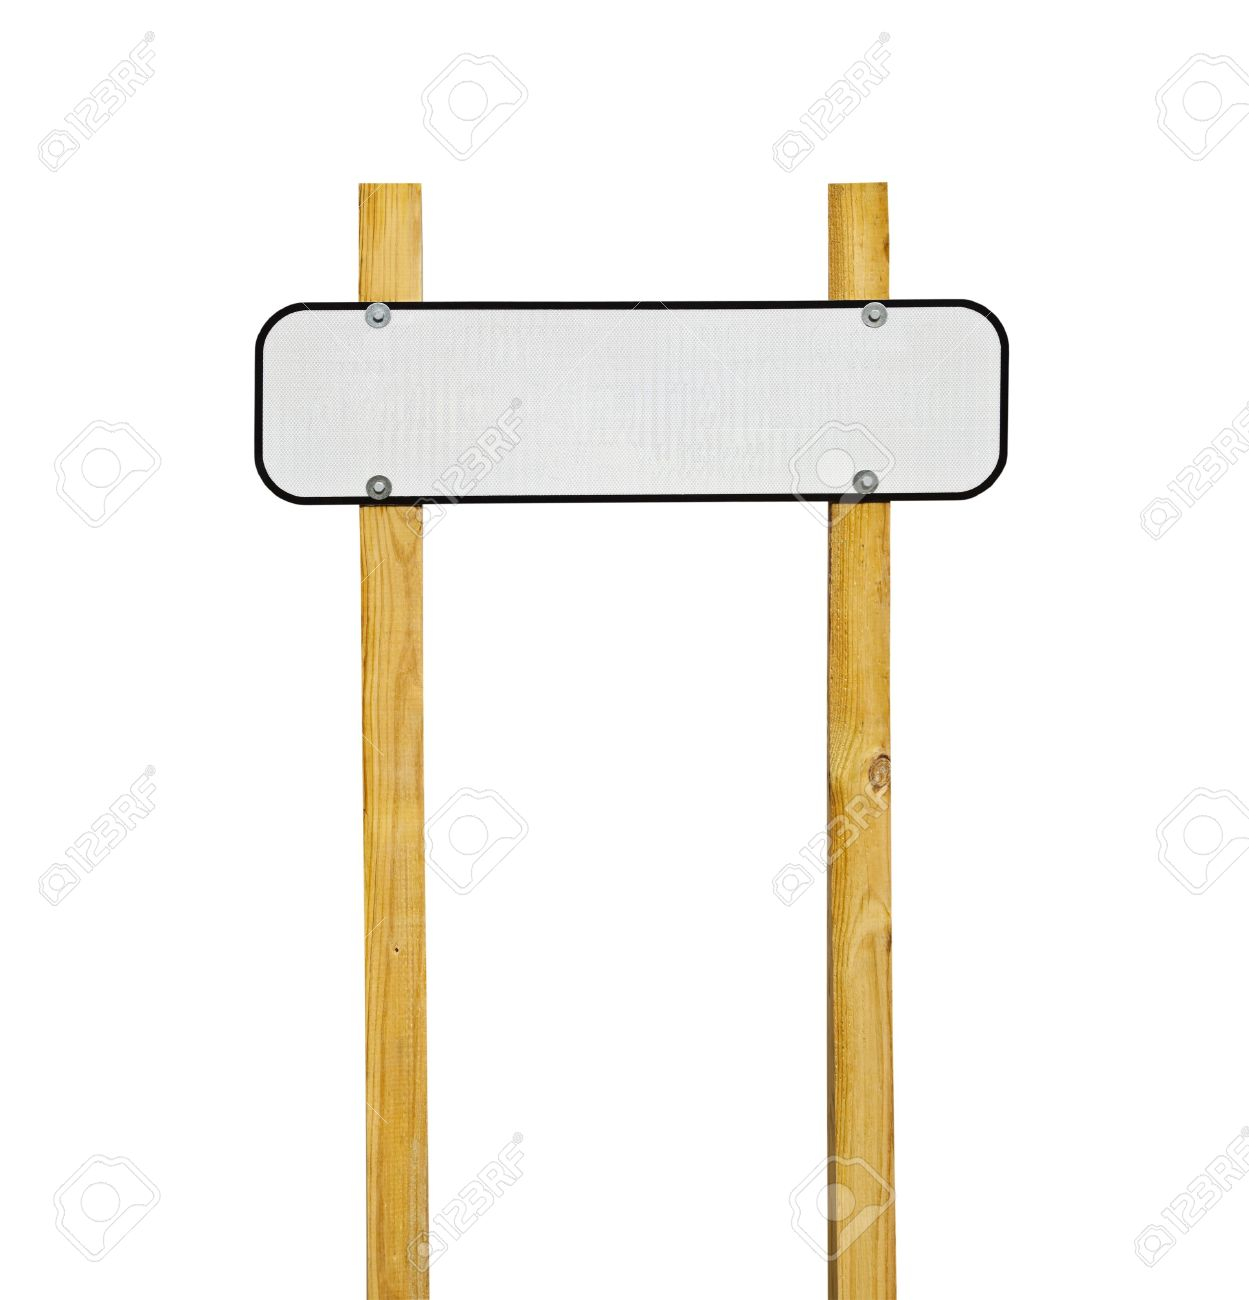 Wooden Pole Clipart.